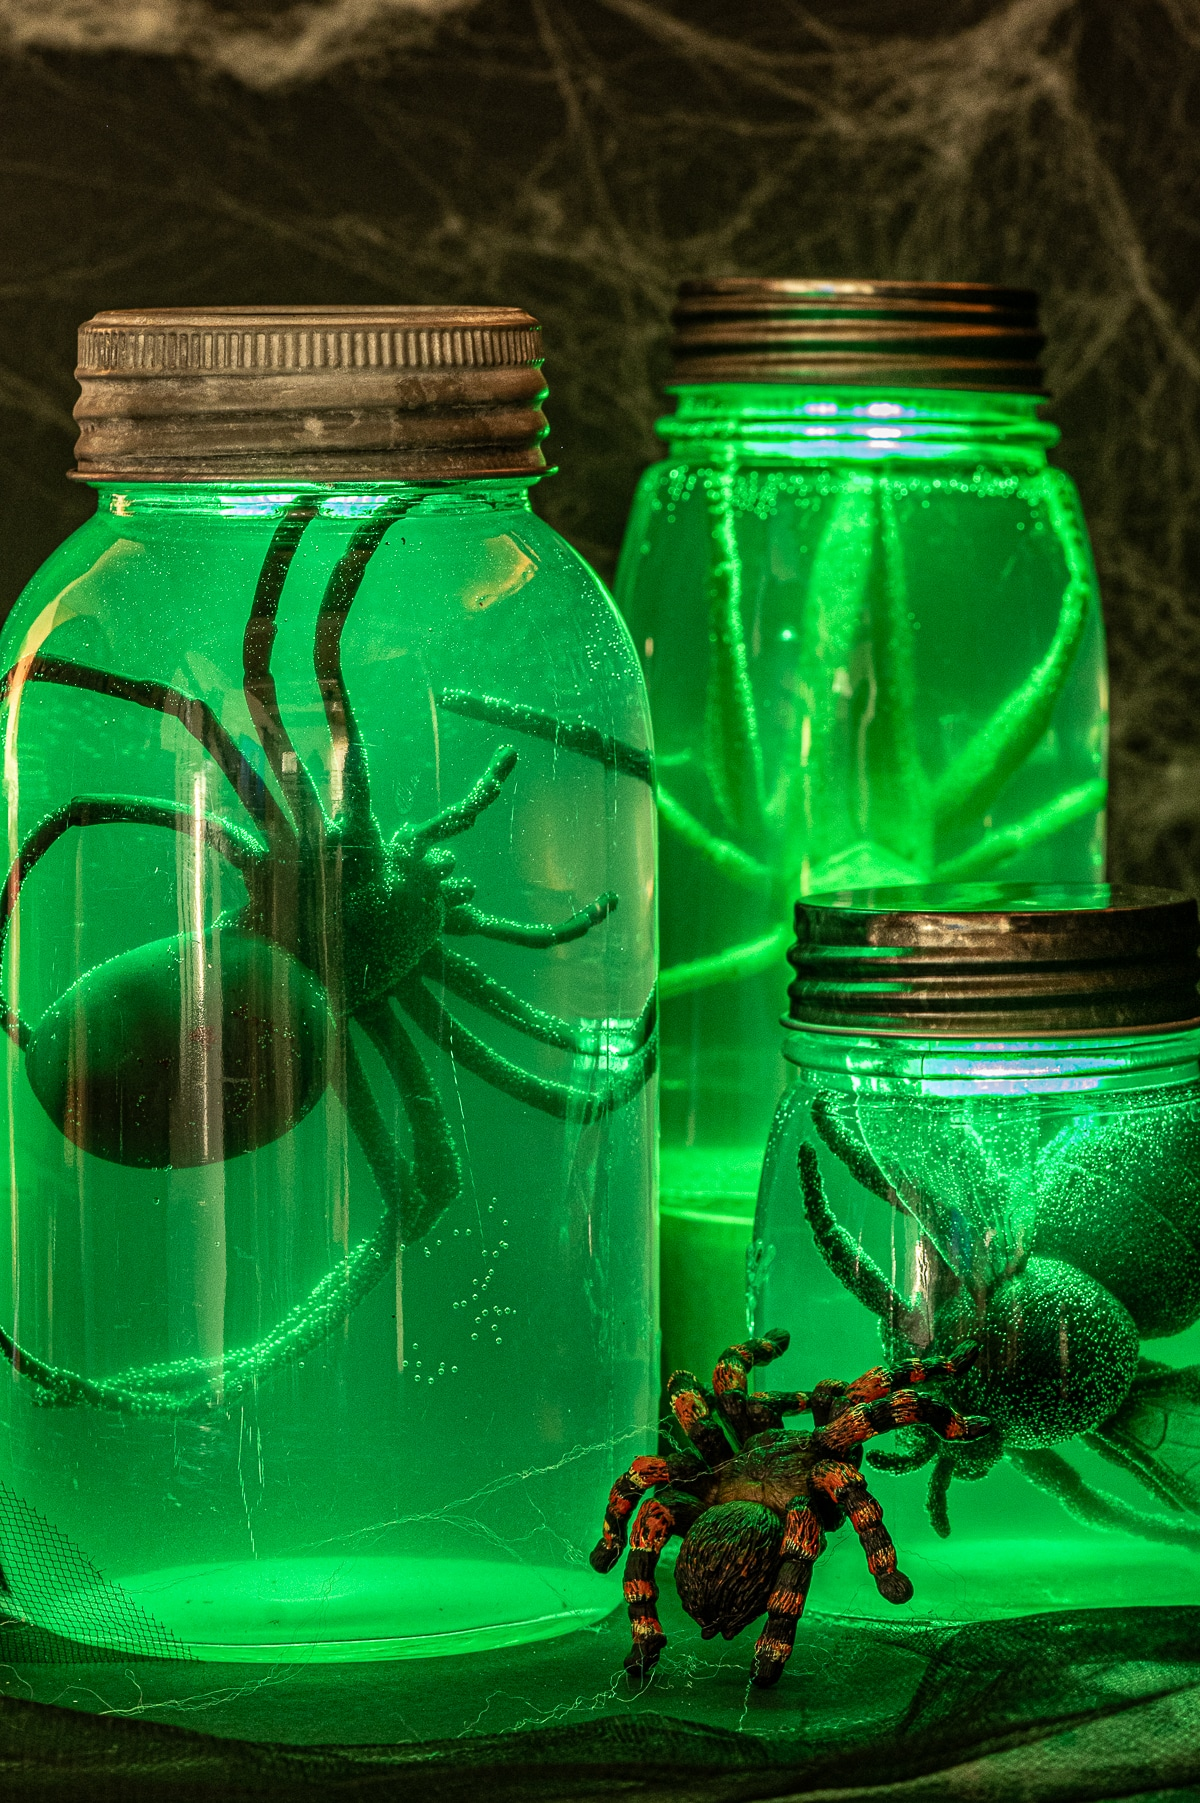 Three green glowing jars filled with large bugs against a black background with spiderwebs.